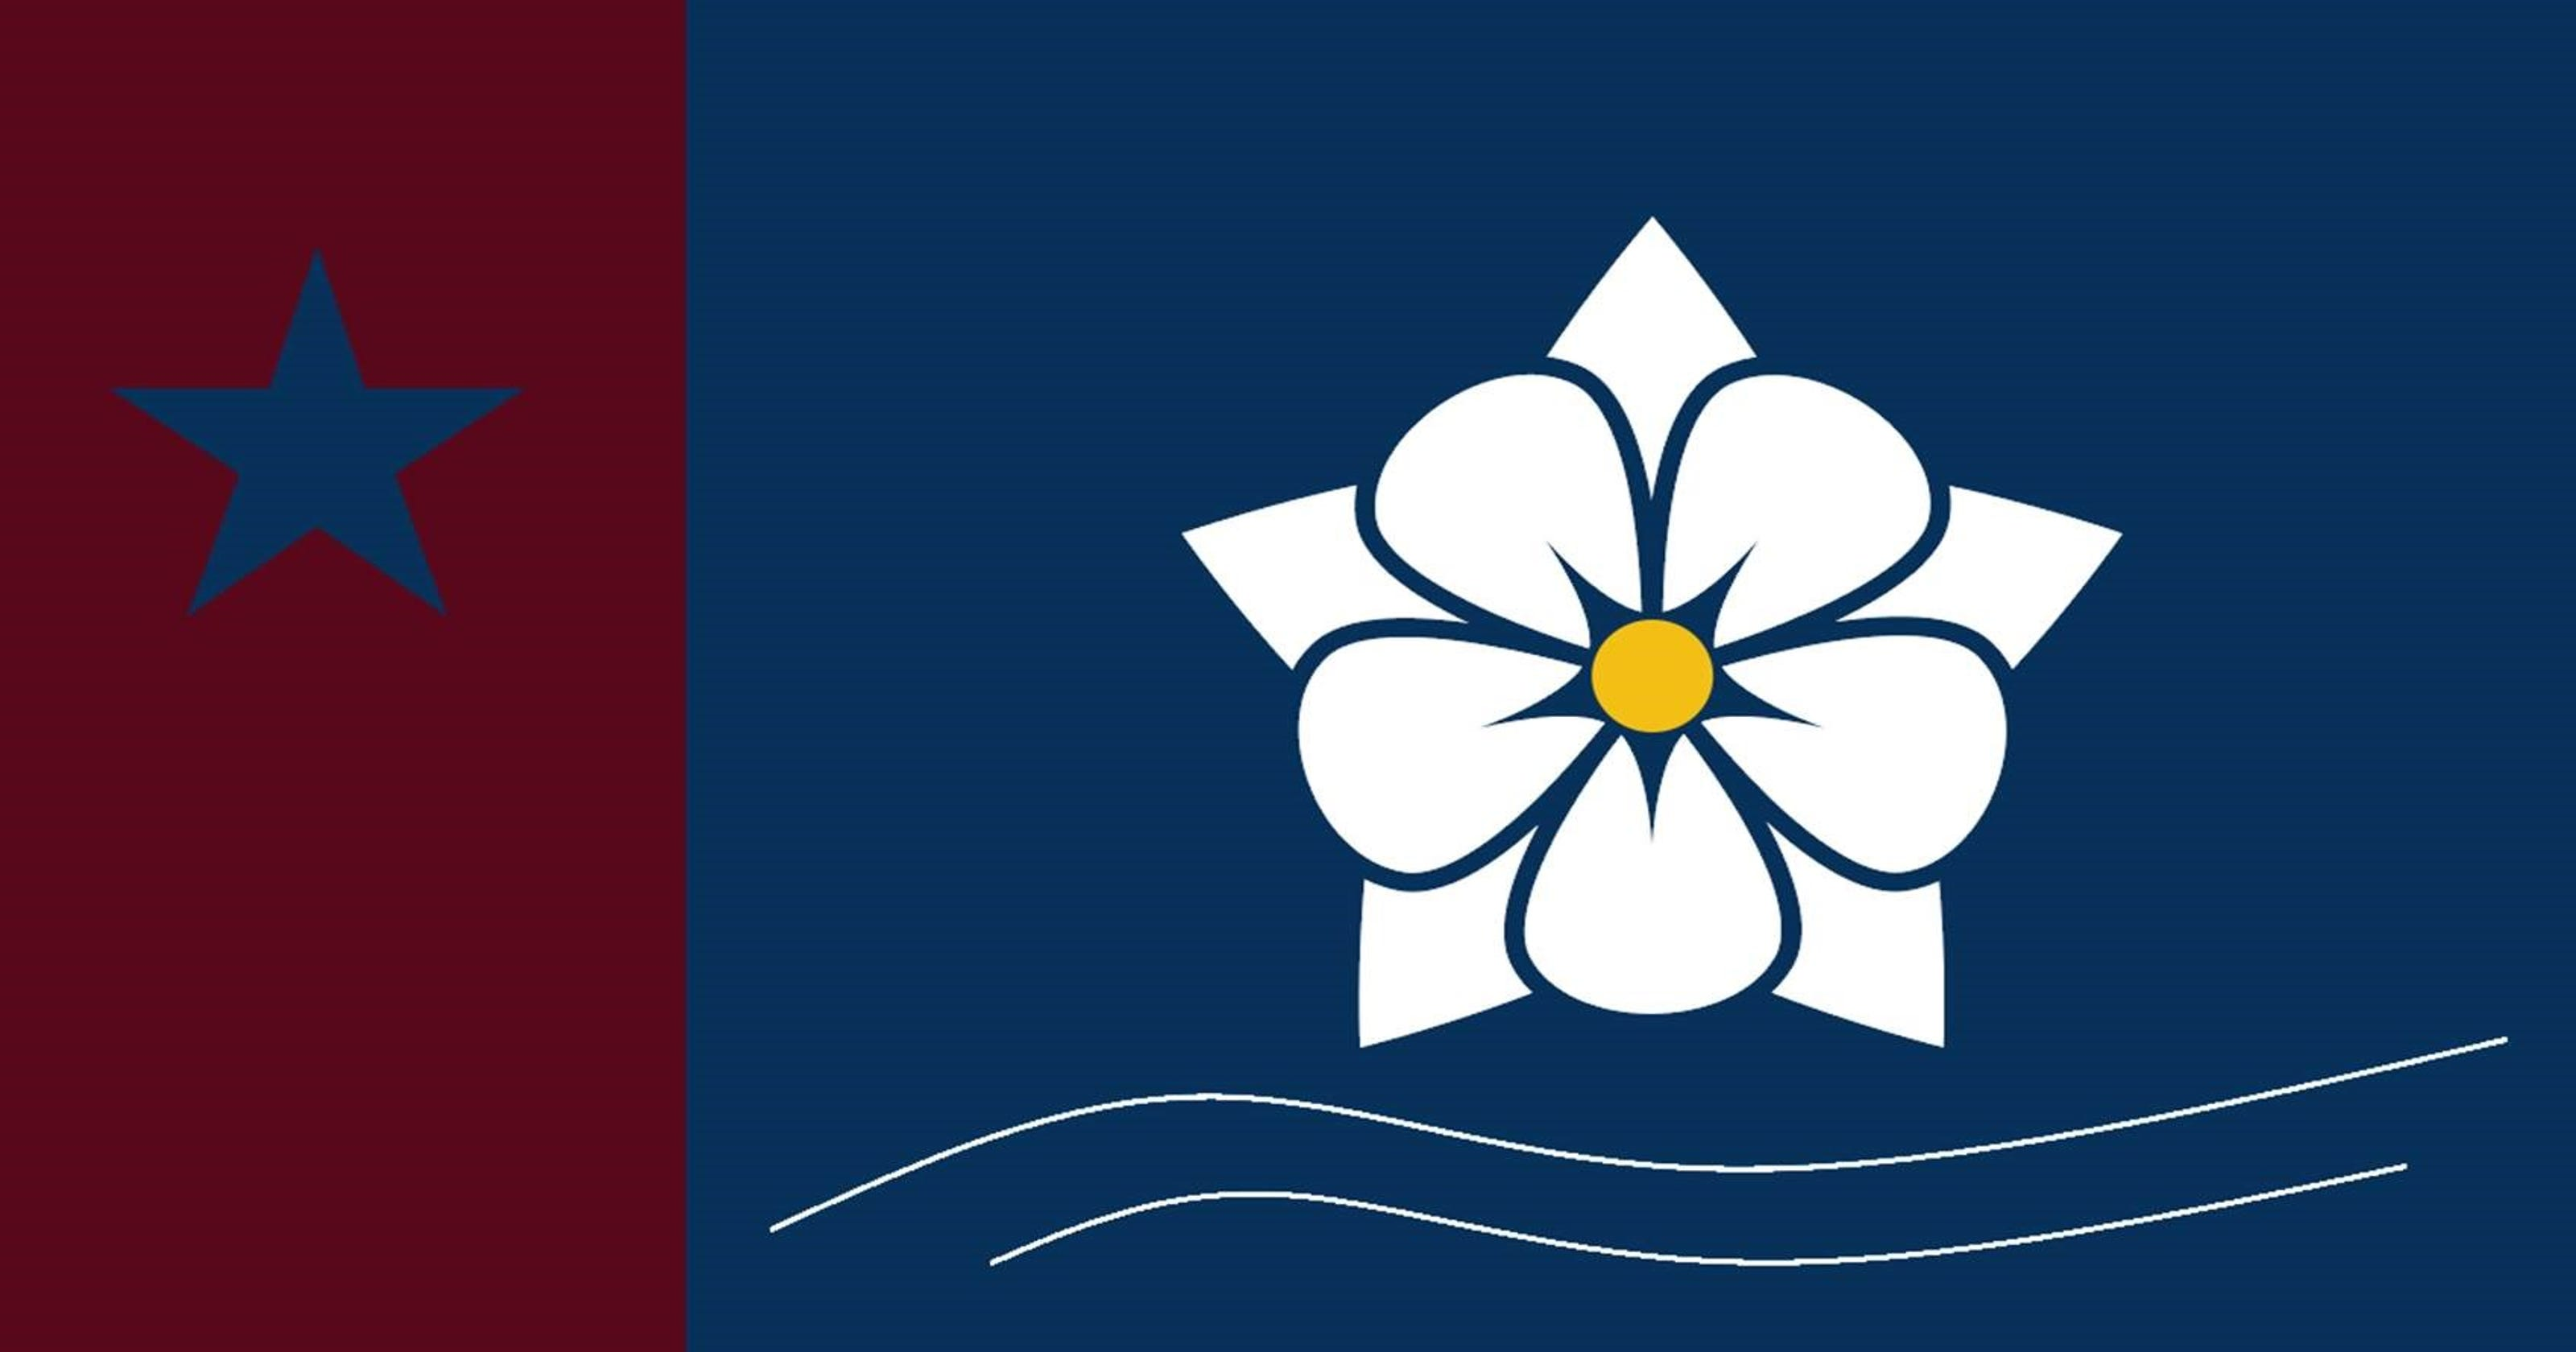 hattiesburg resident comes up with design for city flag